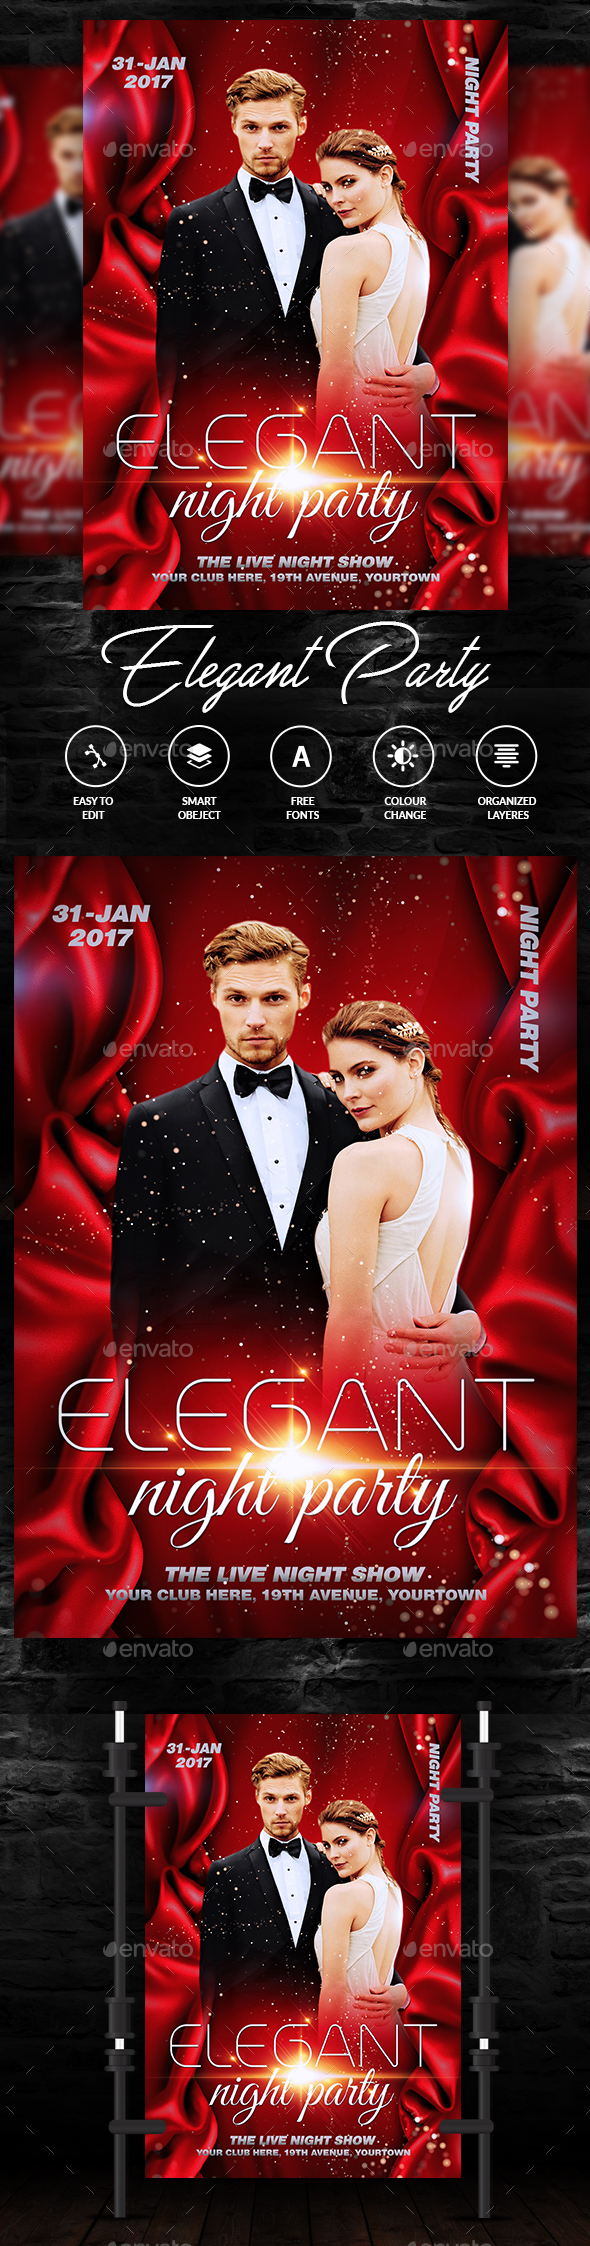 Elegant Party Flyer - Events Flyers